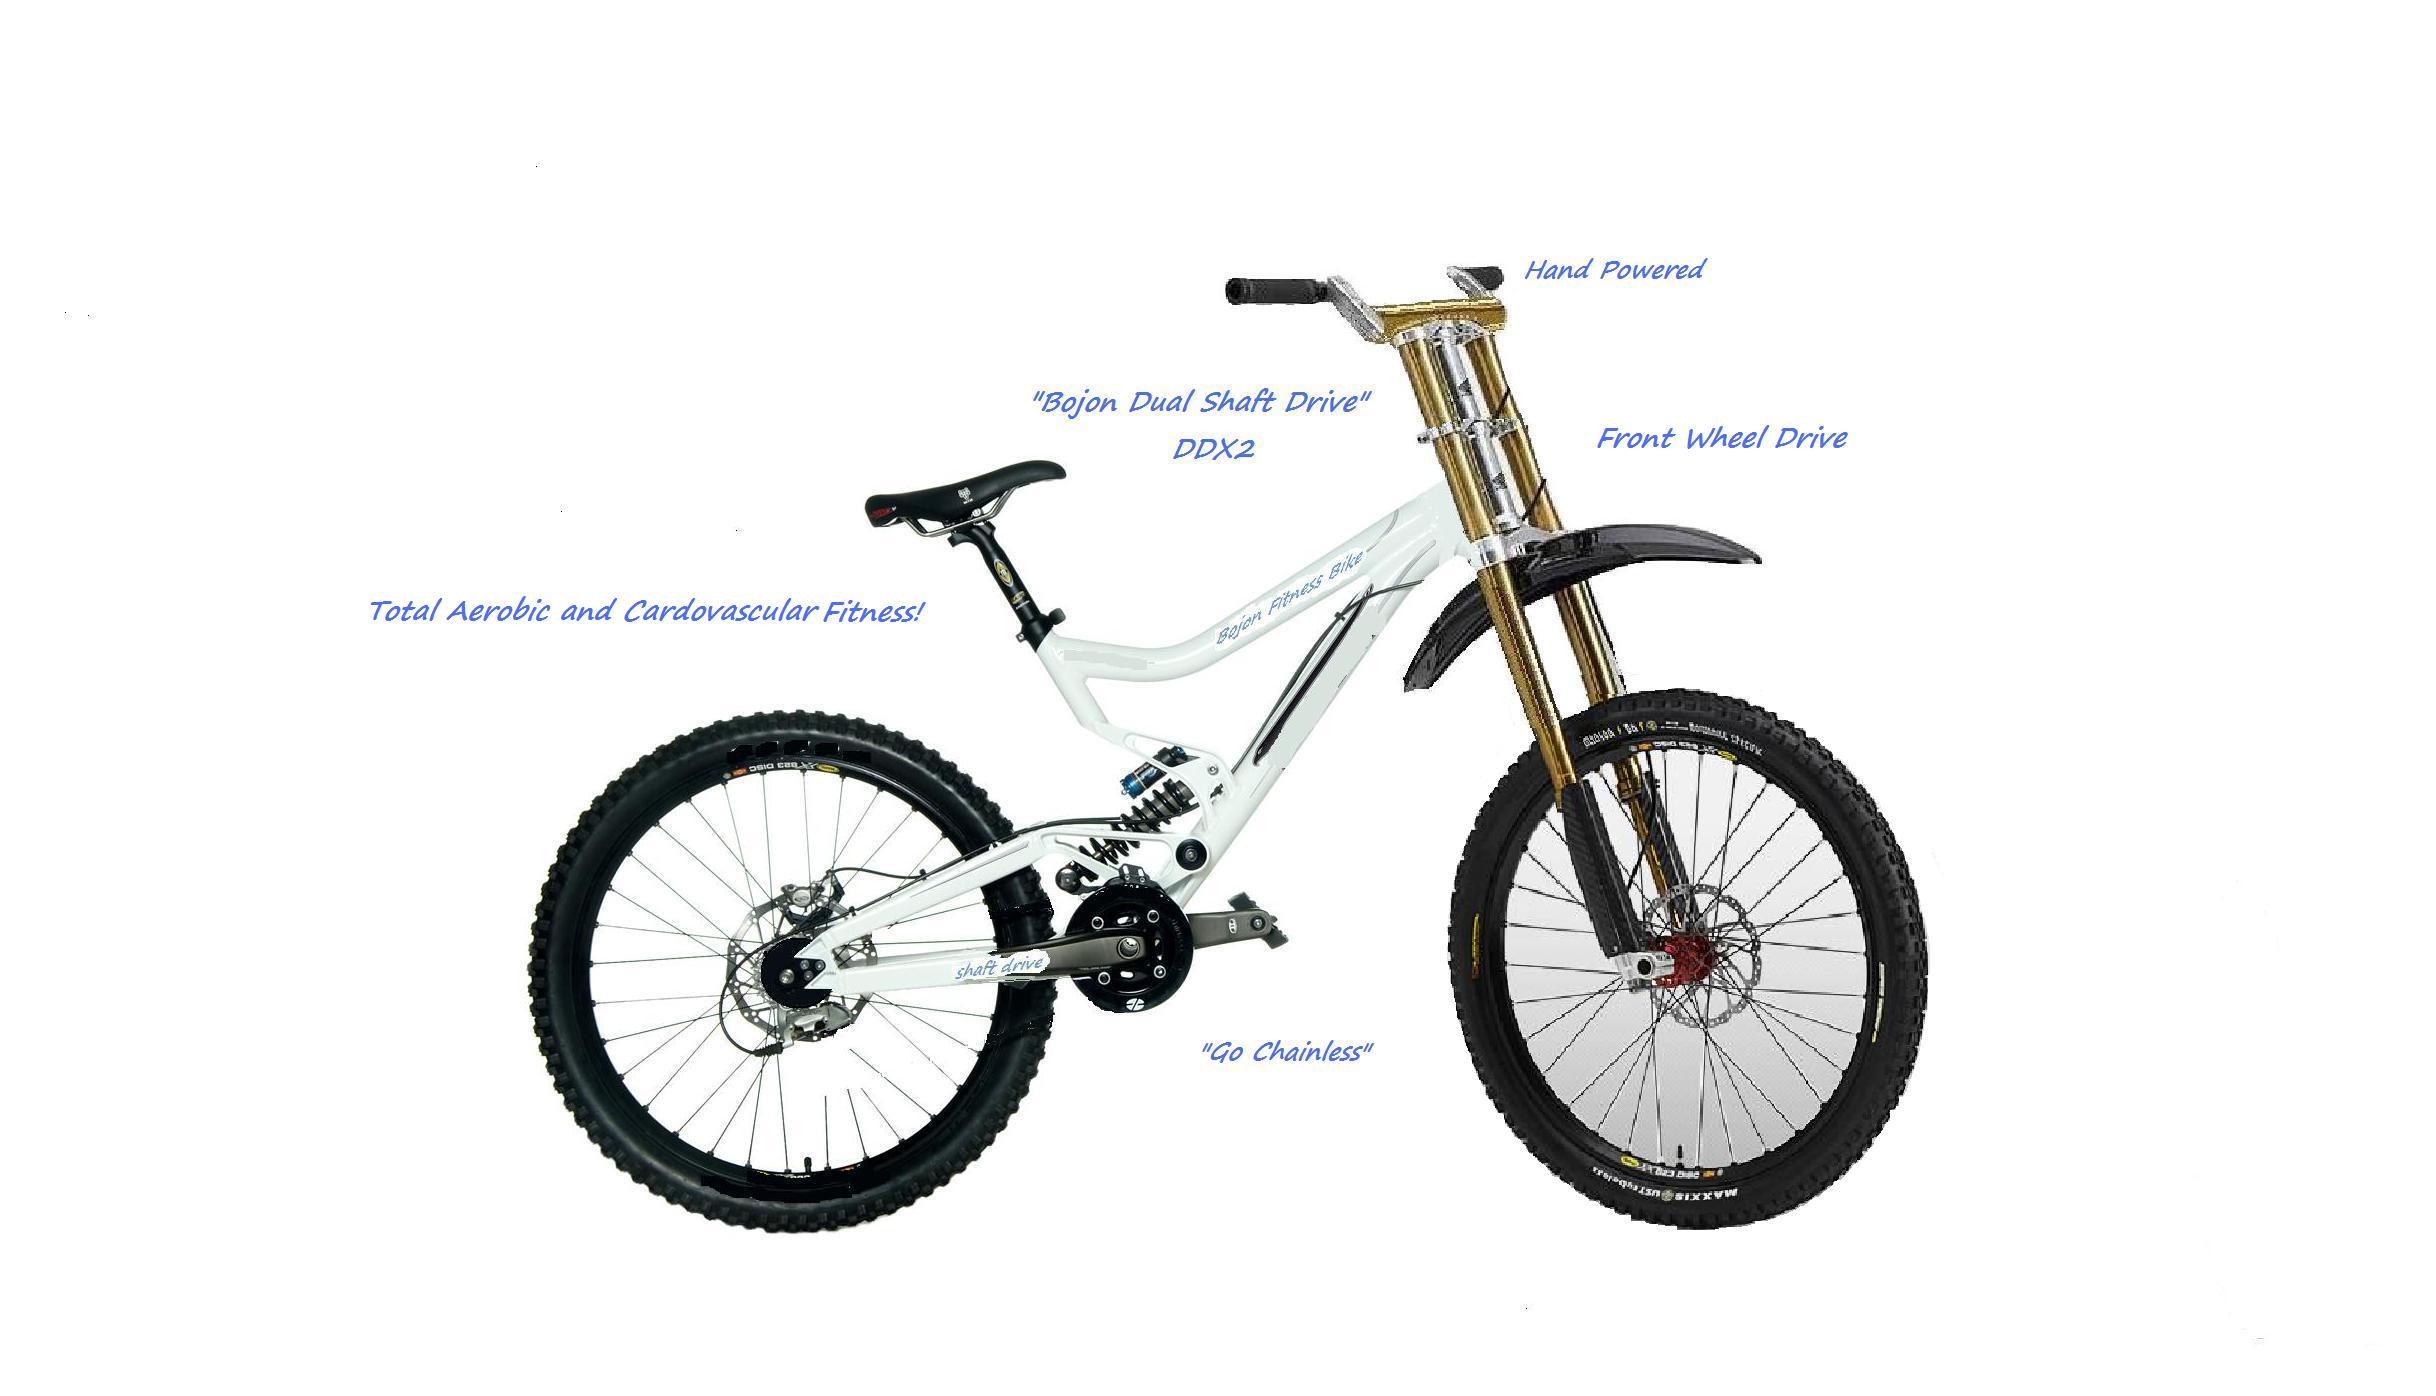 NEW!!Chain-less hand driven front wheel drive!